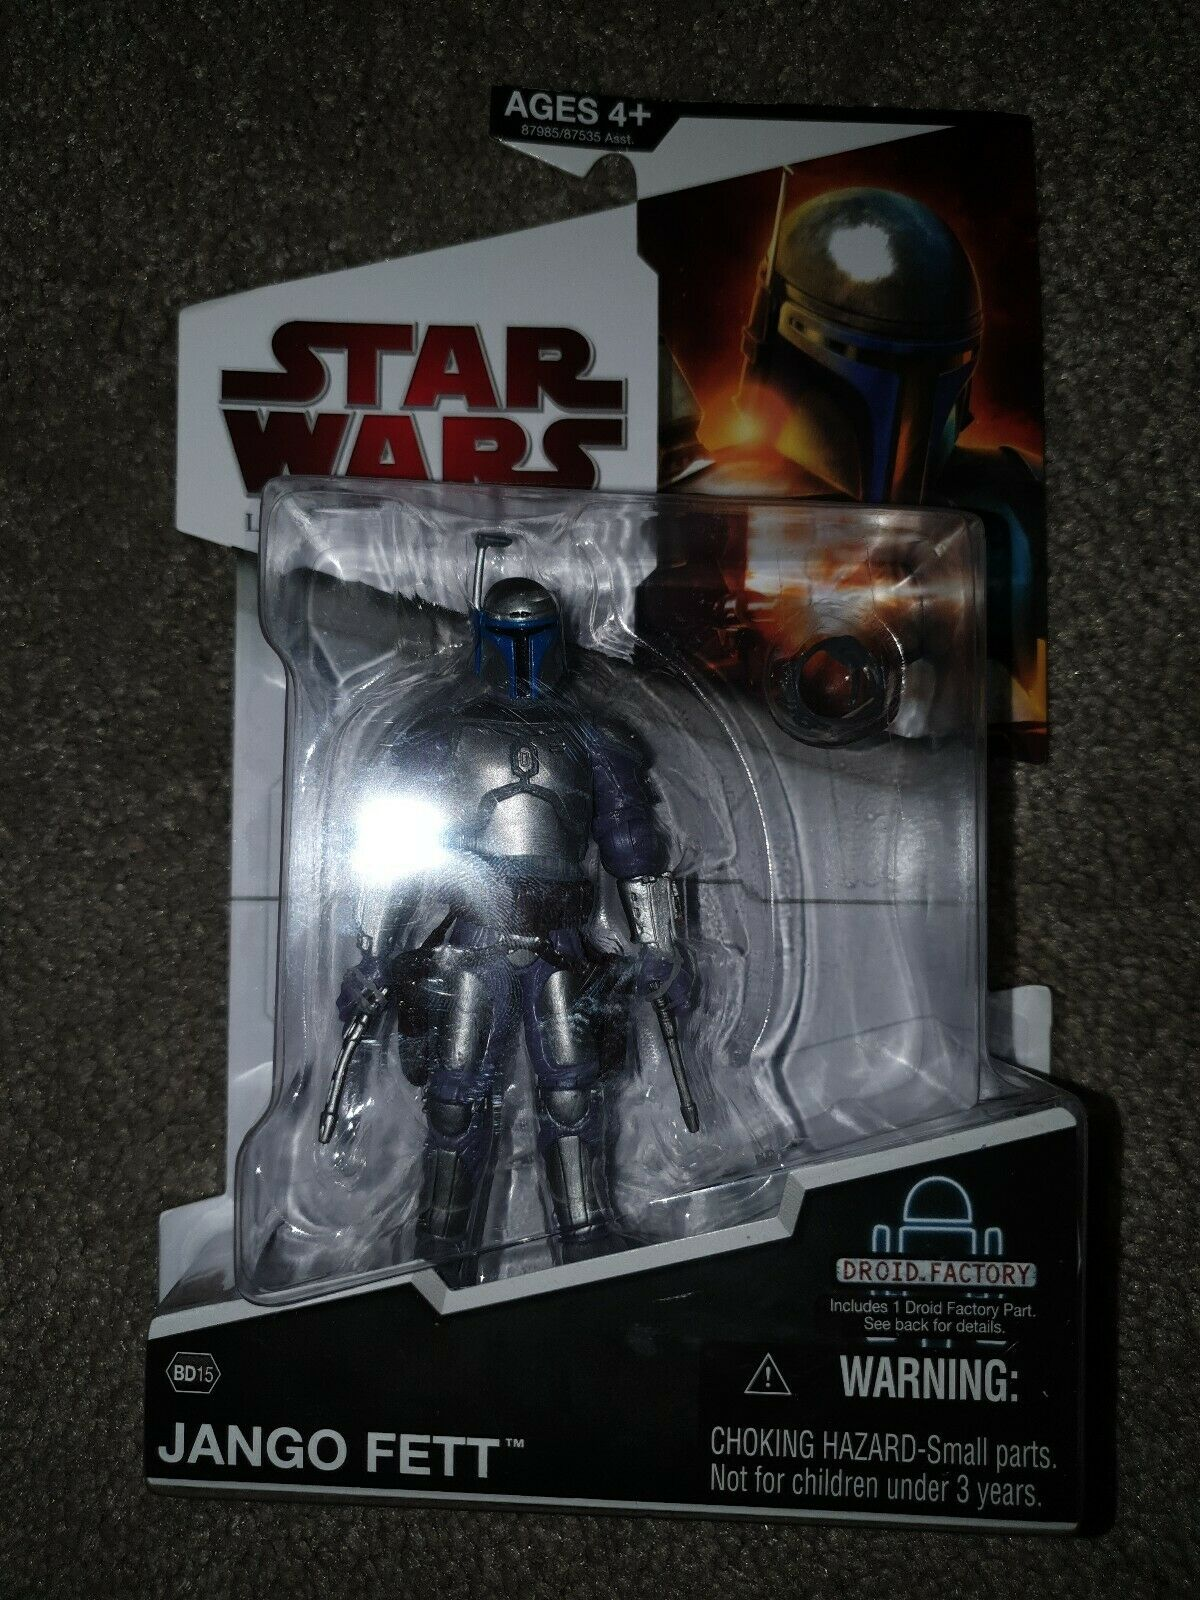 Asst Star Wars Legacy Collection Saga Legends Collectable Action Figure BNIP